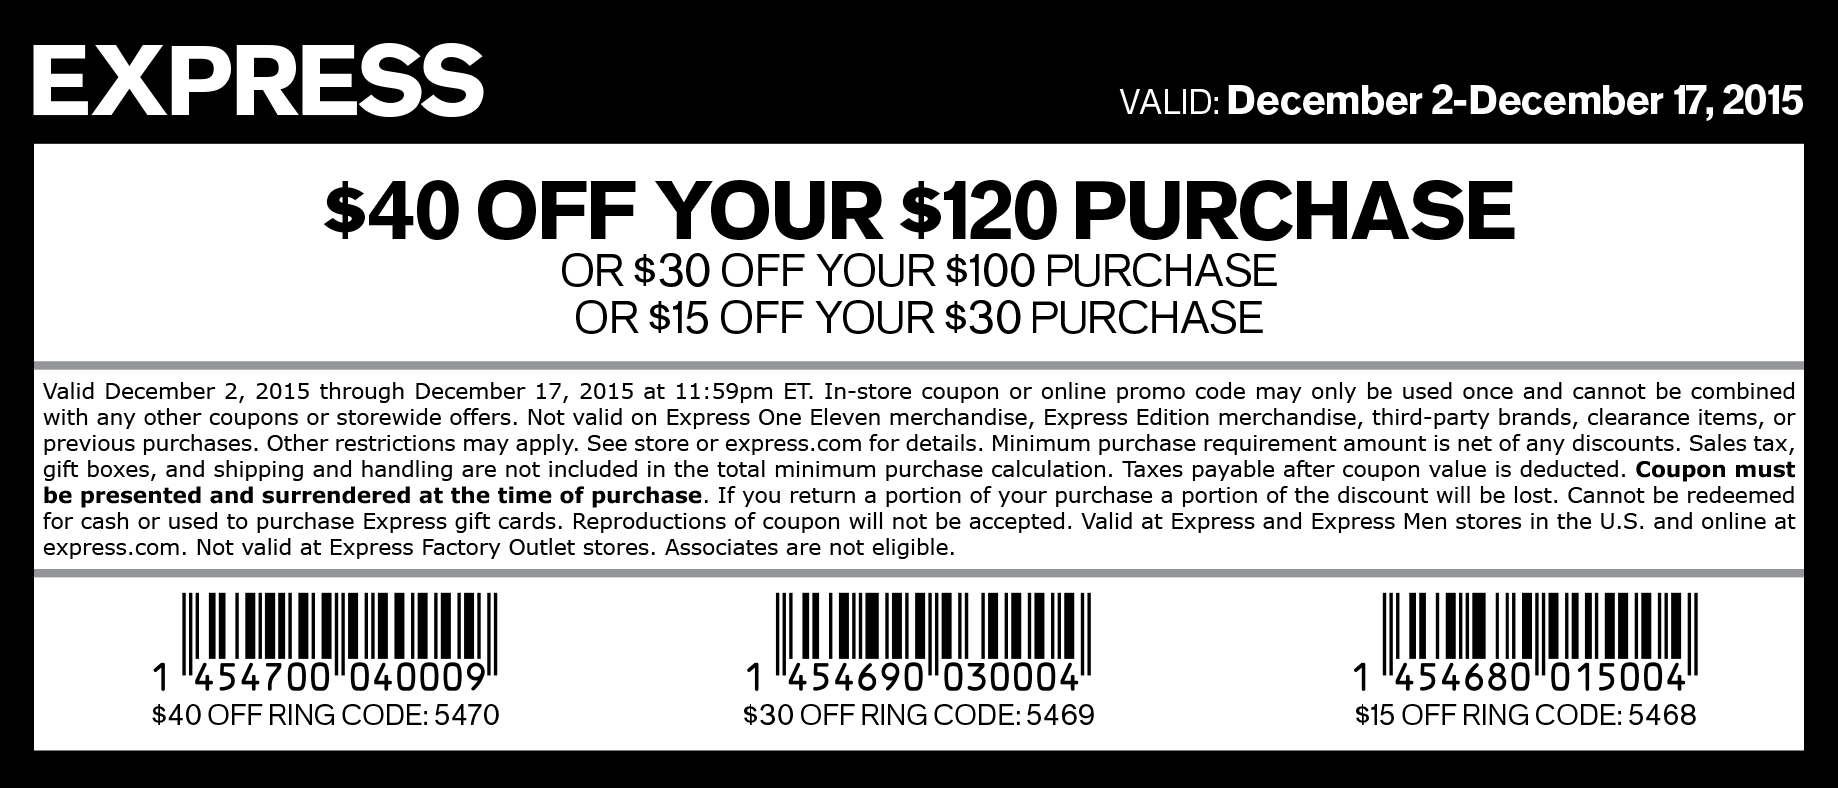 Just enter the Express promo code at checkout to score great deals. Shop the Express Black Friday and Cyber Monday sales to save 50% or more on everything in-store. Express makes saving money simple with their variety of site-wide sales and promotional offers.